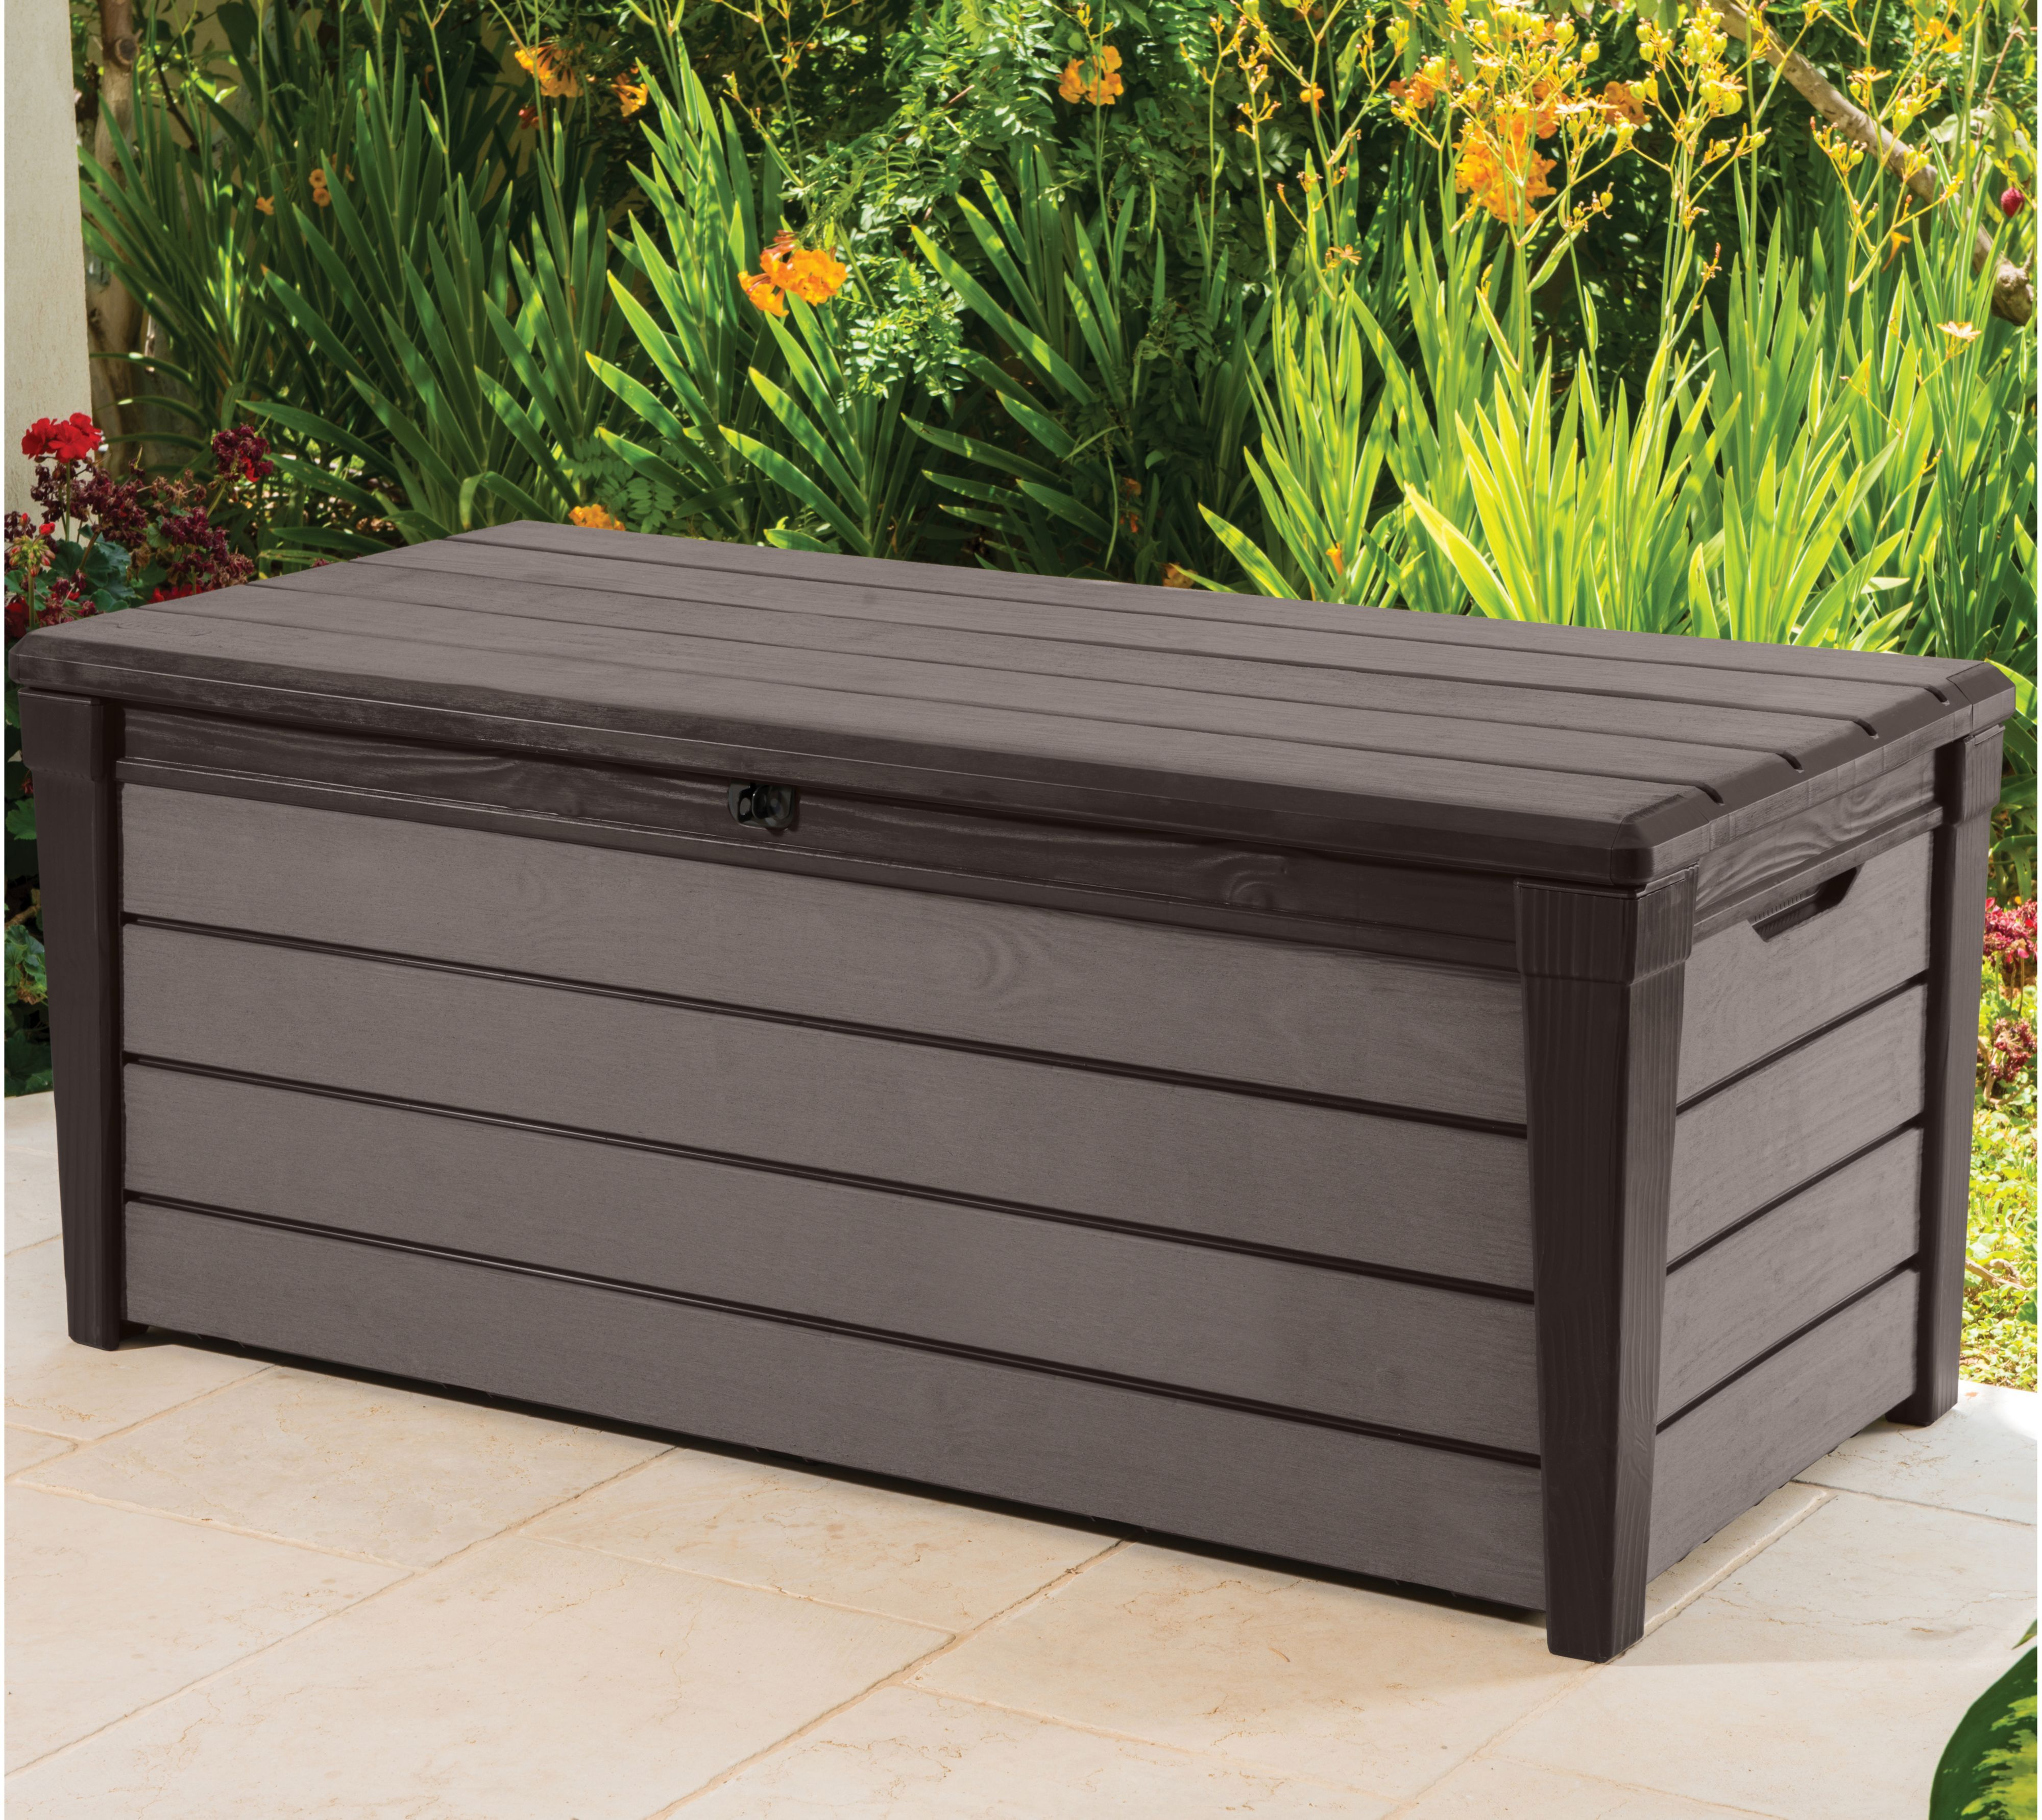 Easy-assembly and Lockable Deck Box with Unique Wood Look and Feel, 120  Gal. - to deal rugs